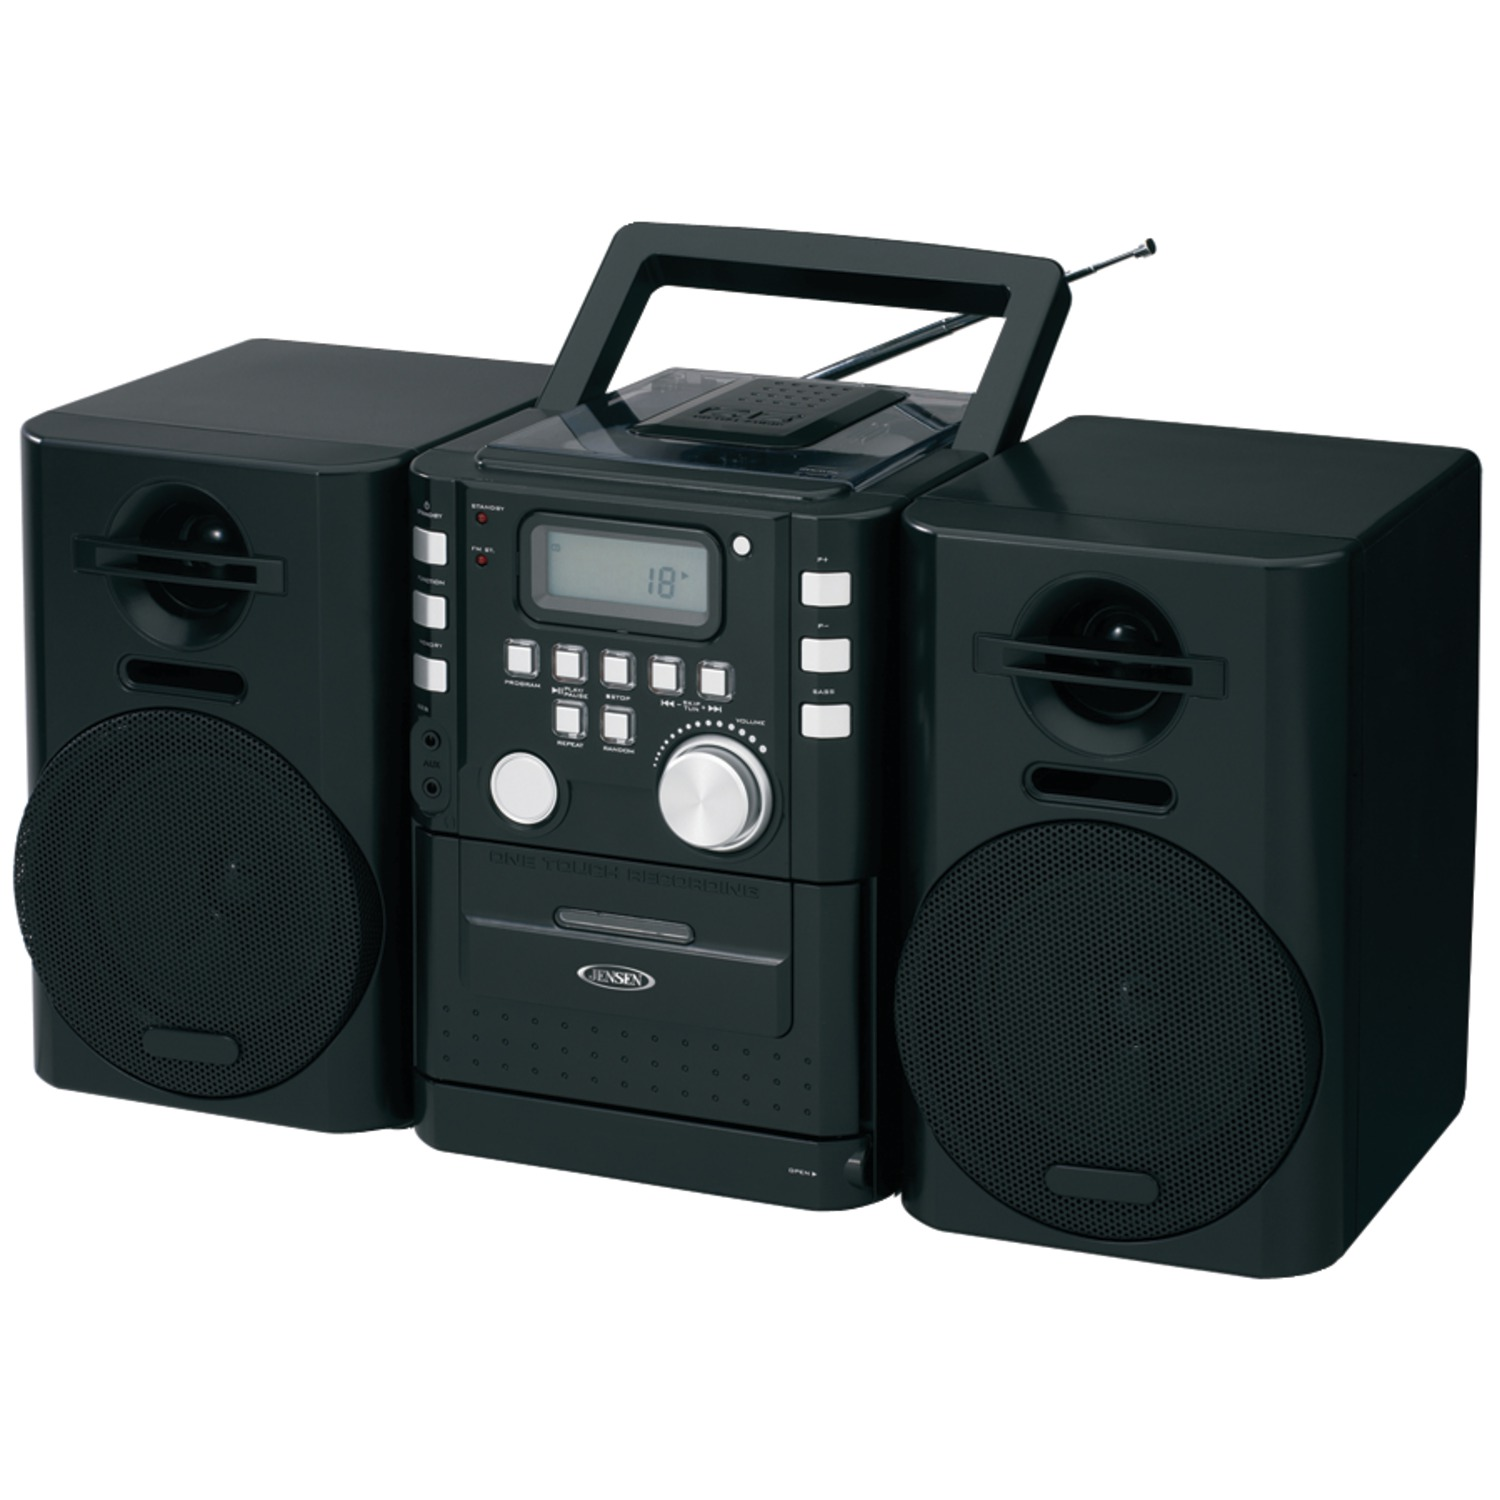 JENSEN CD-725 Portable CD Music System with Cassette & FM Stereo Radio